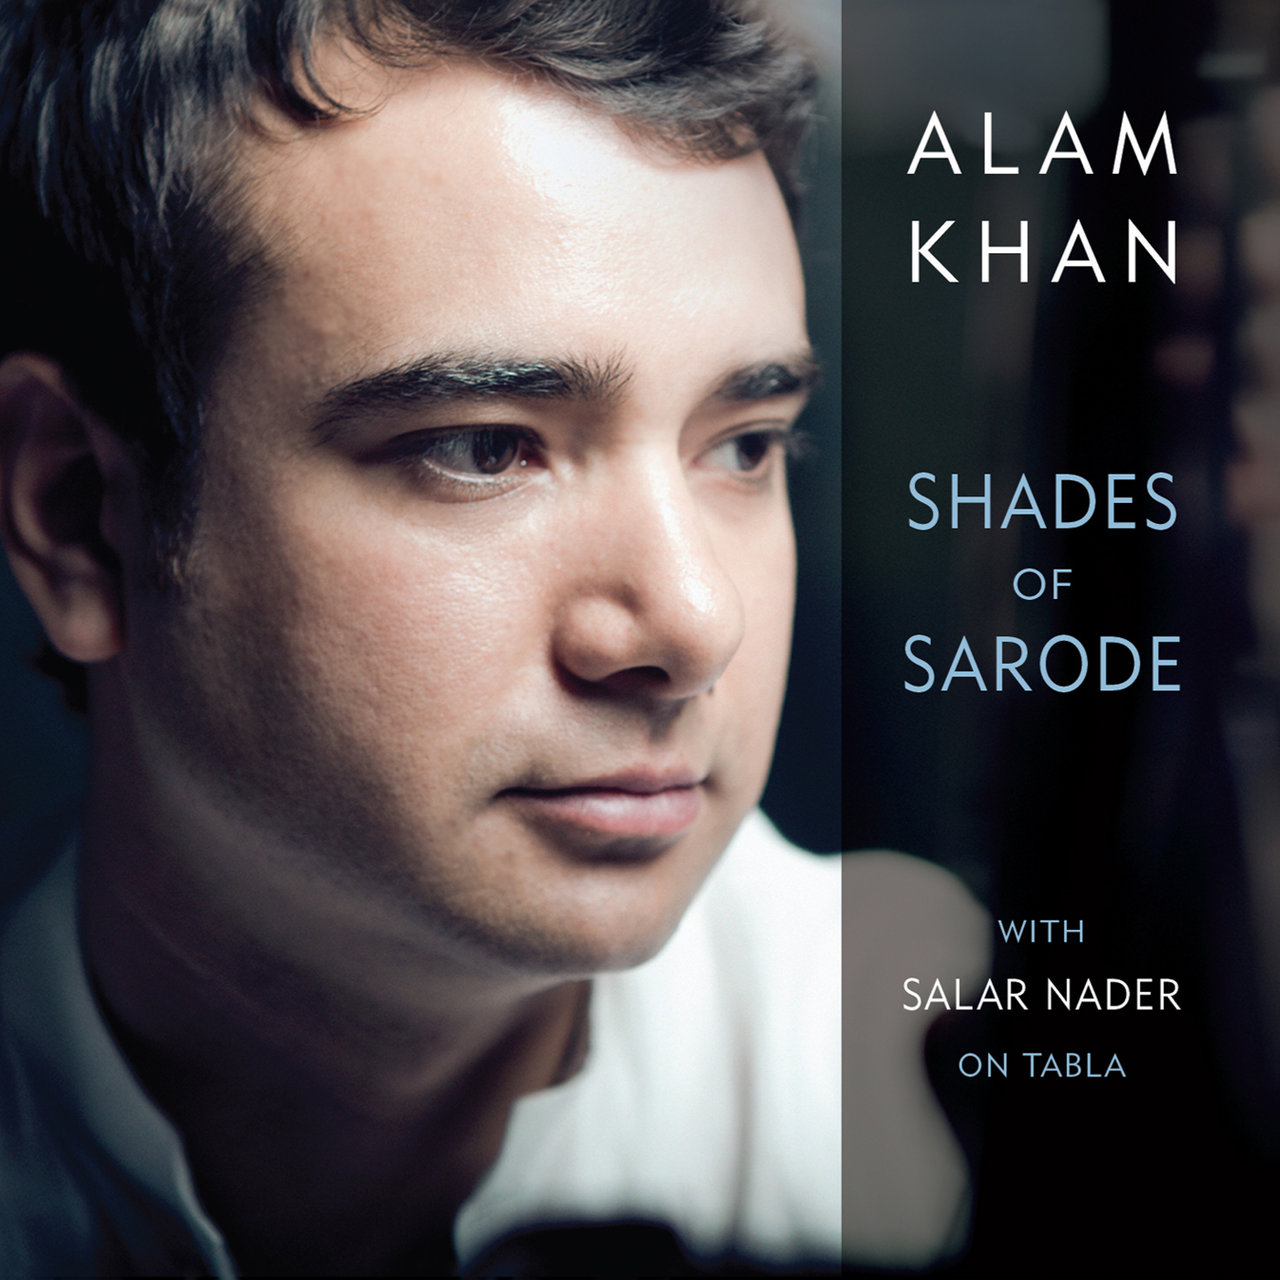 alam-khan-shades-of-sarode.jpg